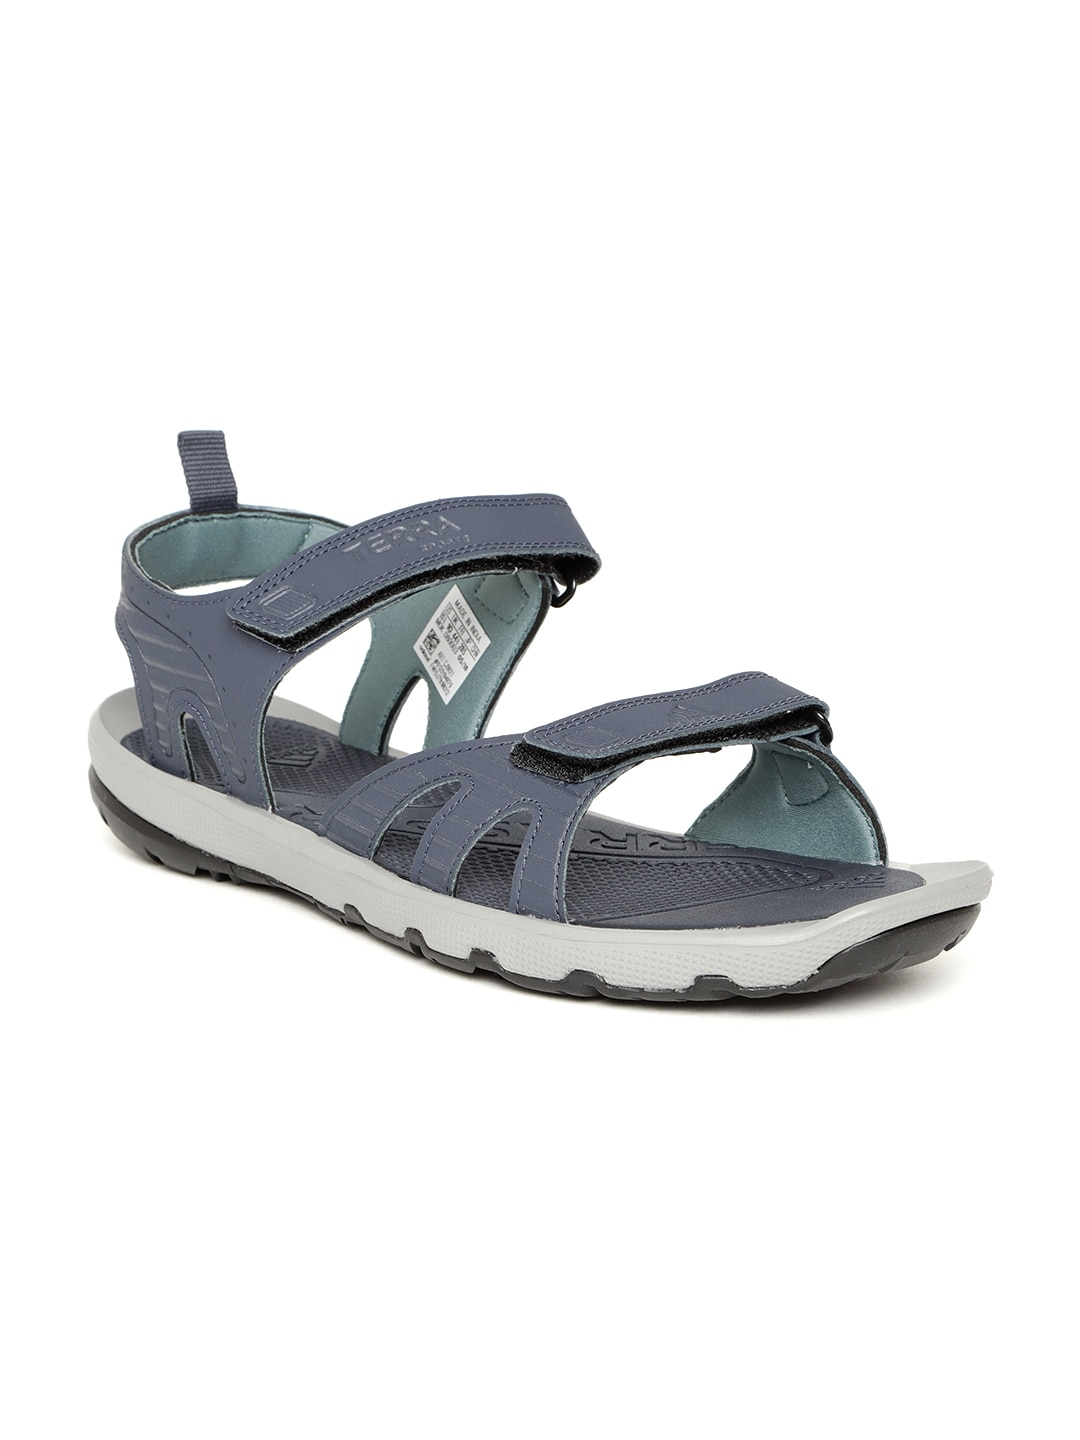 83faa914b258 Adidas Sandals Sandals - Buy Adidas Sandals Sandals online in India